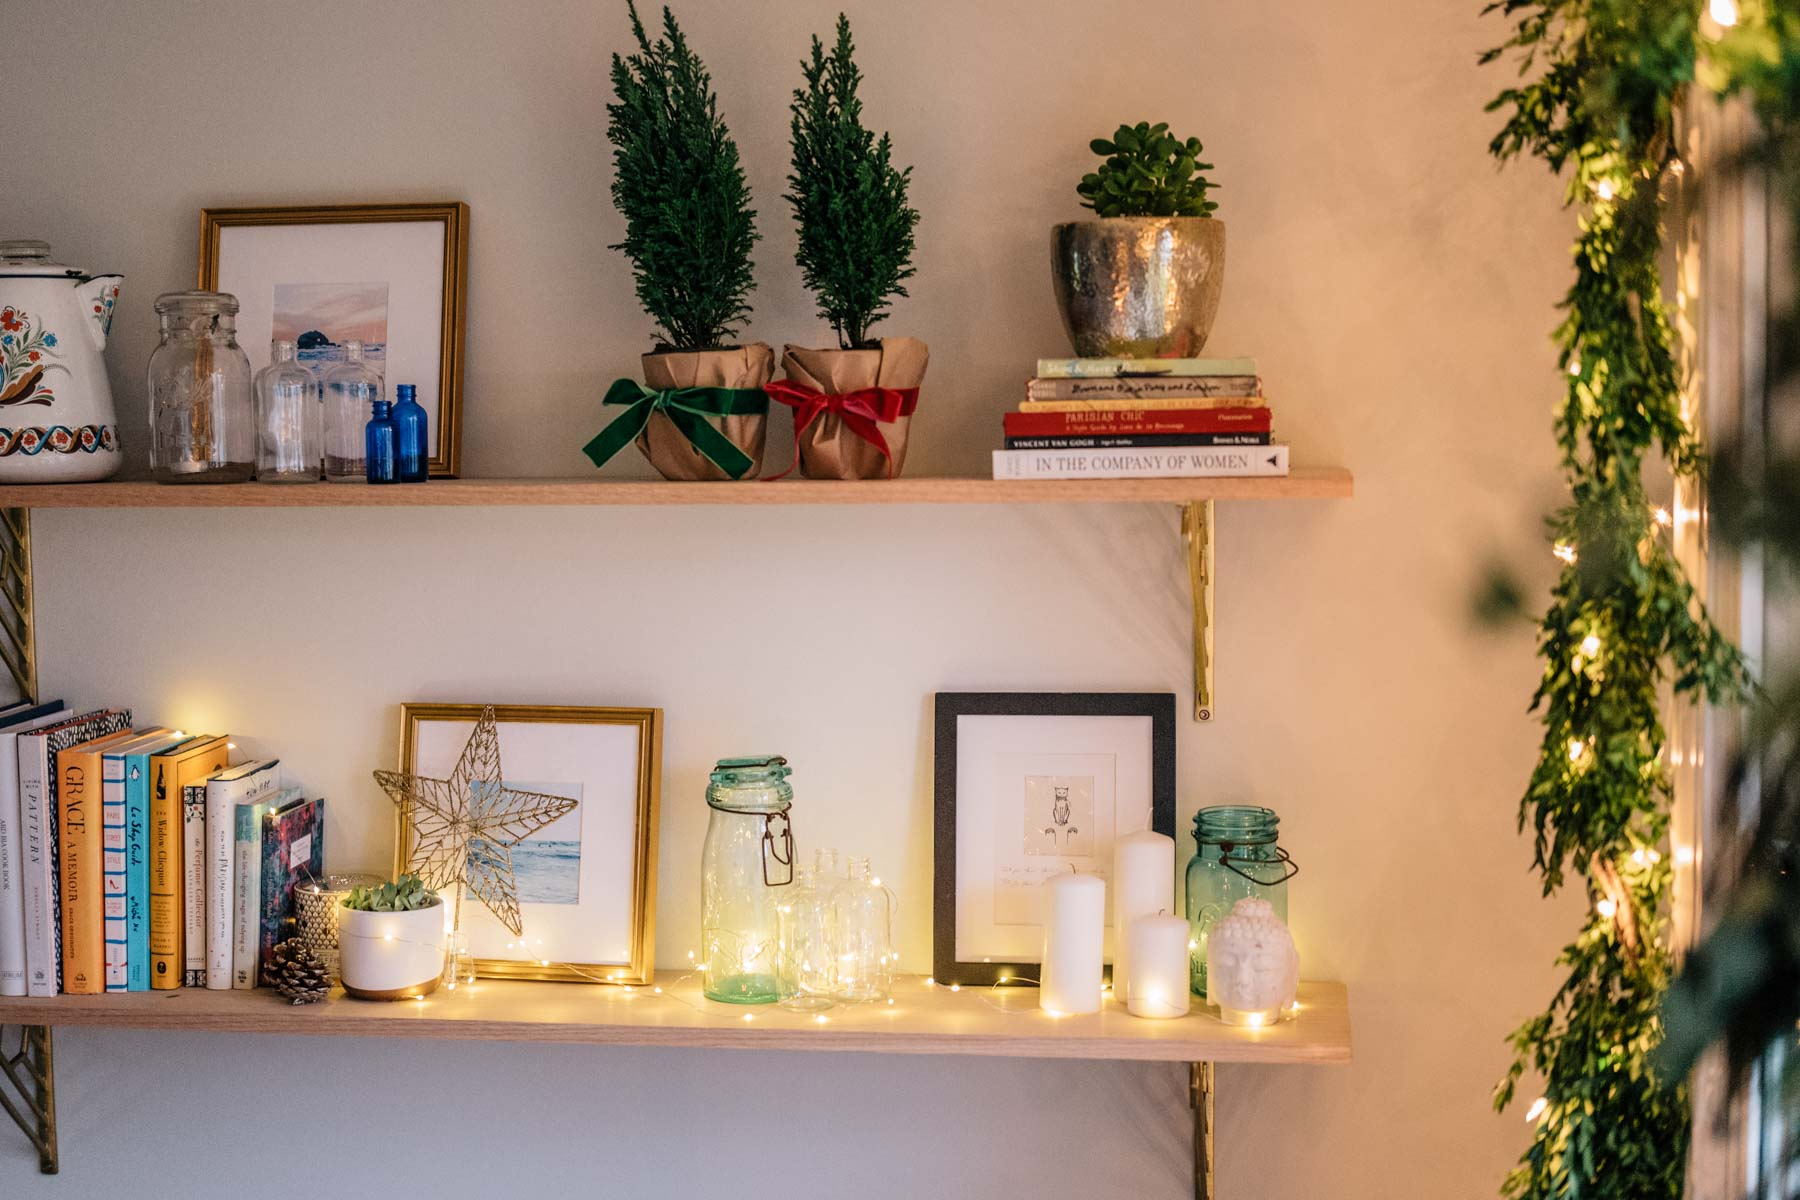 Jess Ann Kirby shares her holiday decor including twinkle lights and potted mini trees